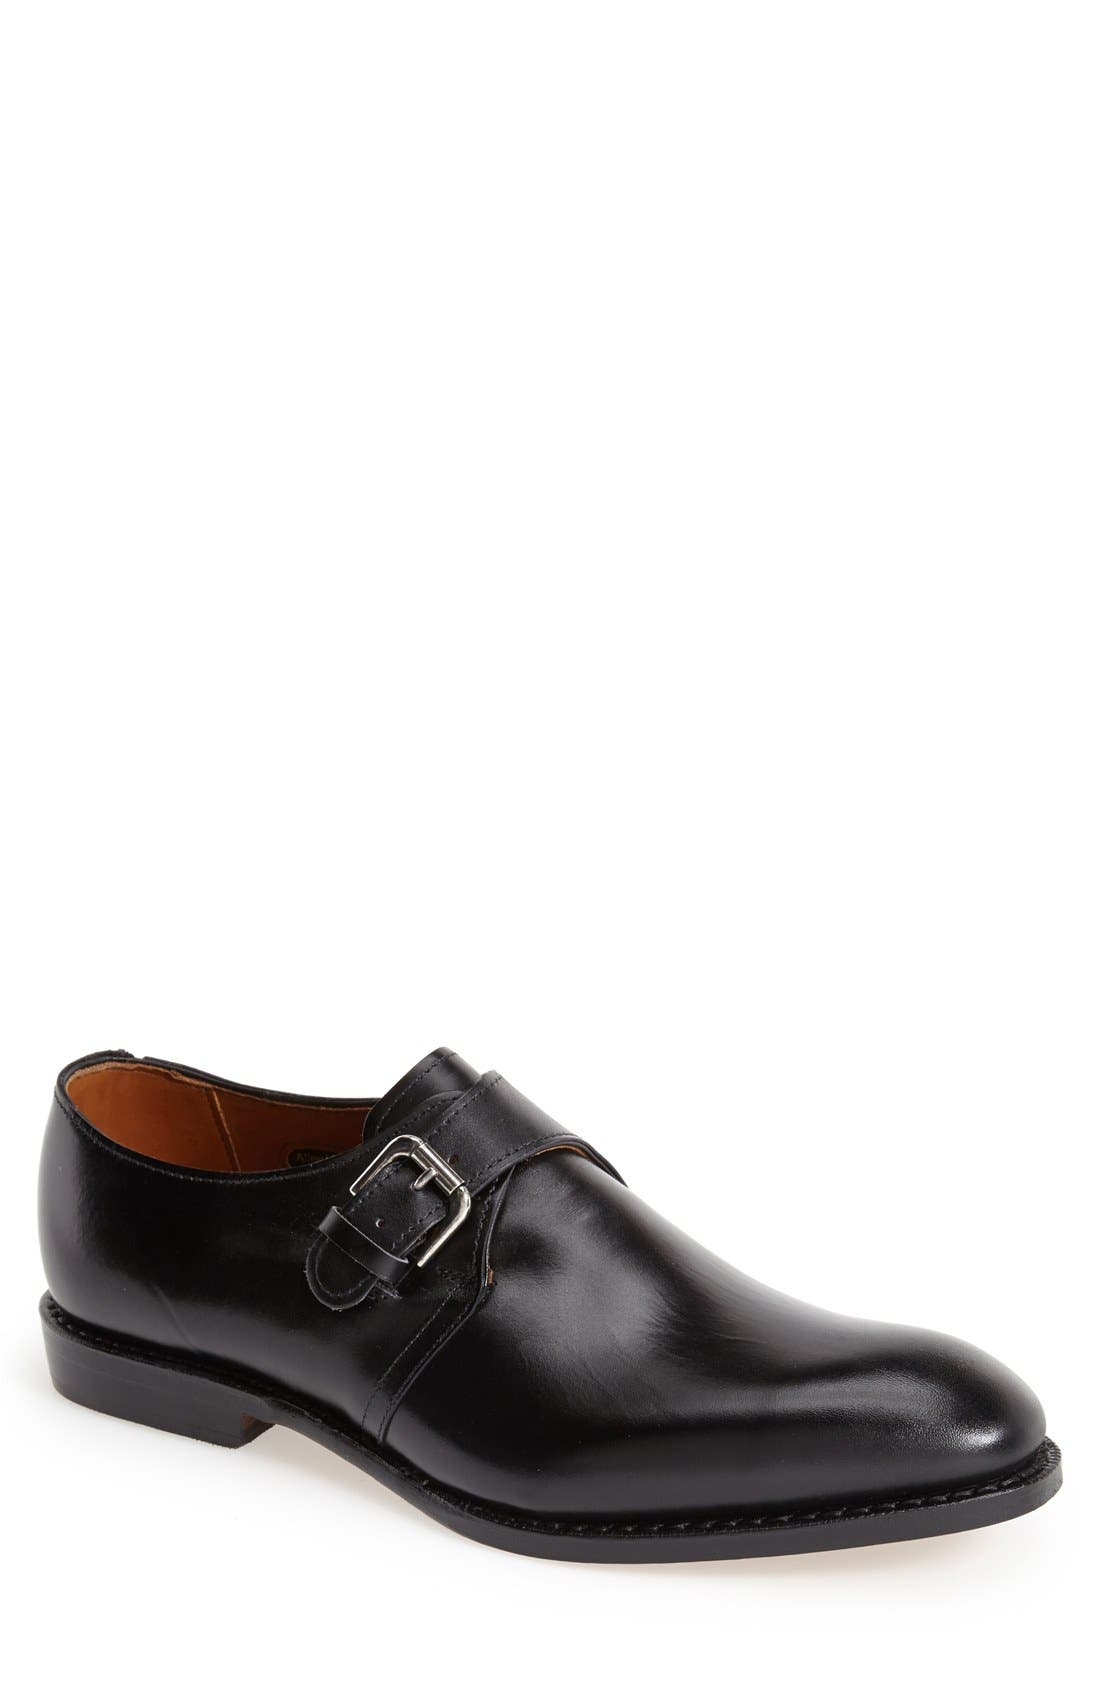 Alternate Image 1 Selected - Allen Edmonds Warwick Monk Strap Shoe (Men)